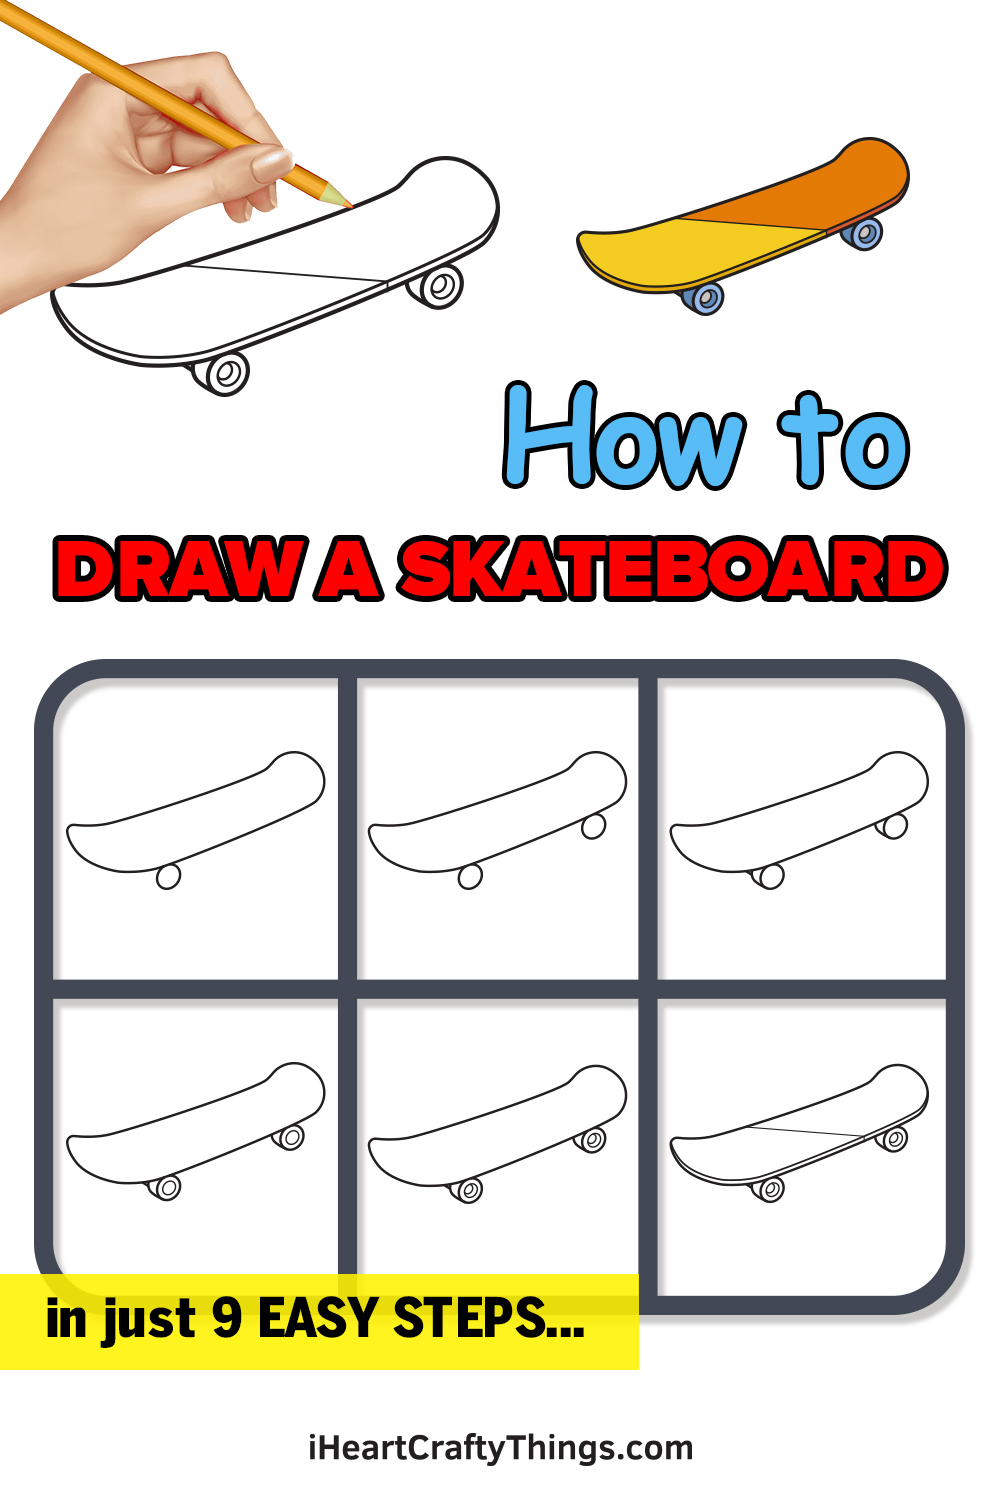 how to draw a skateboard in 9 easy steps